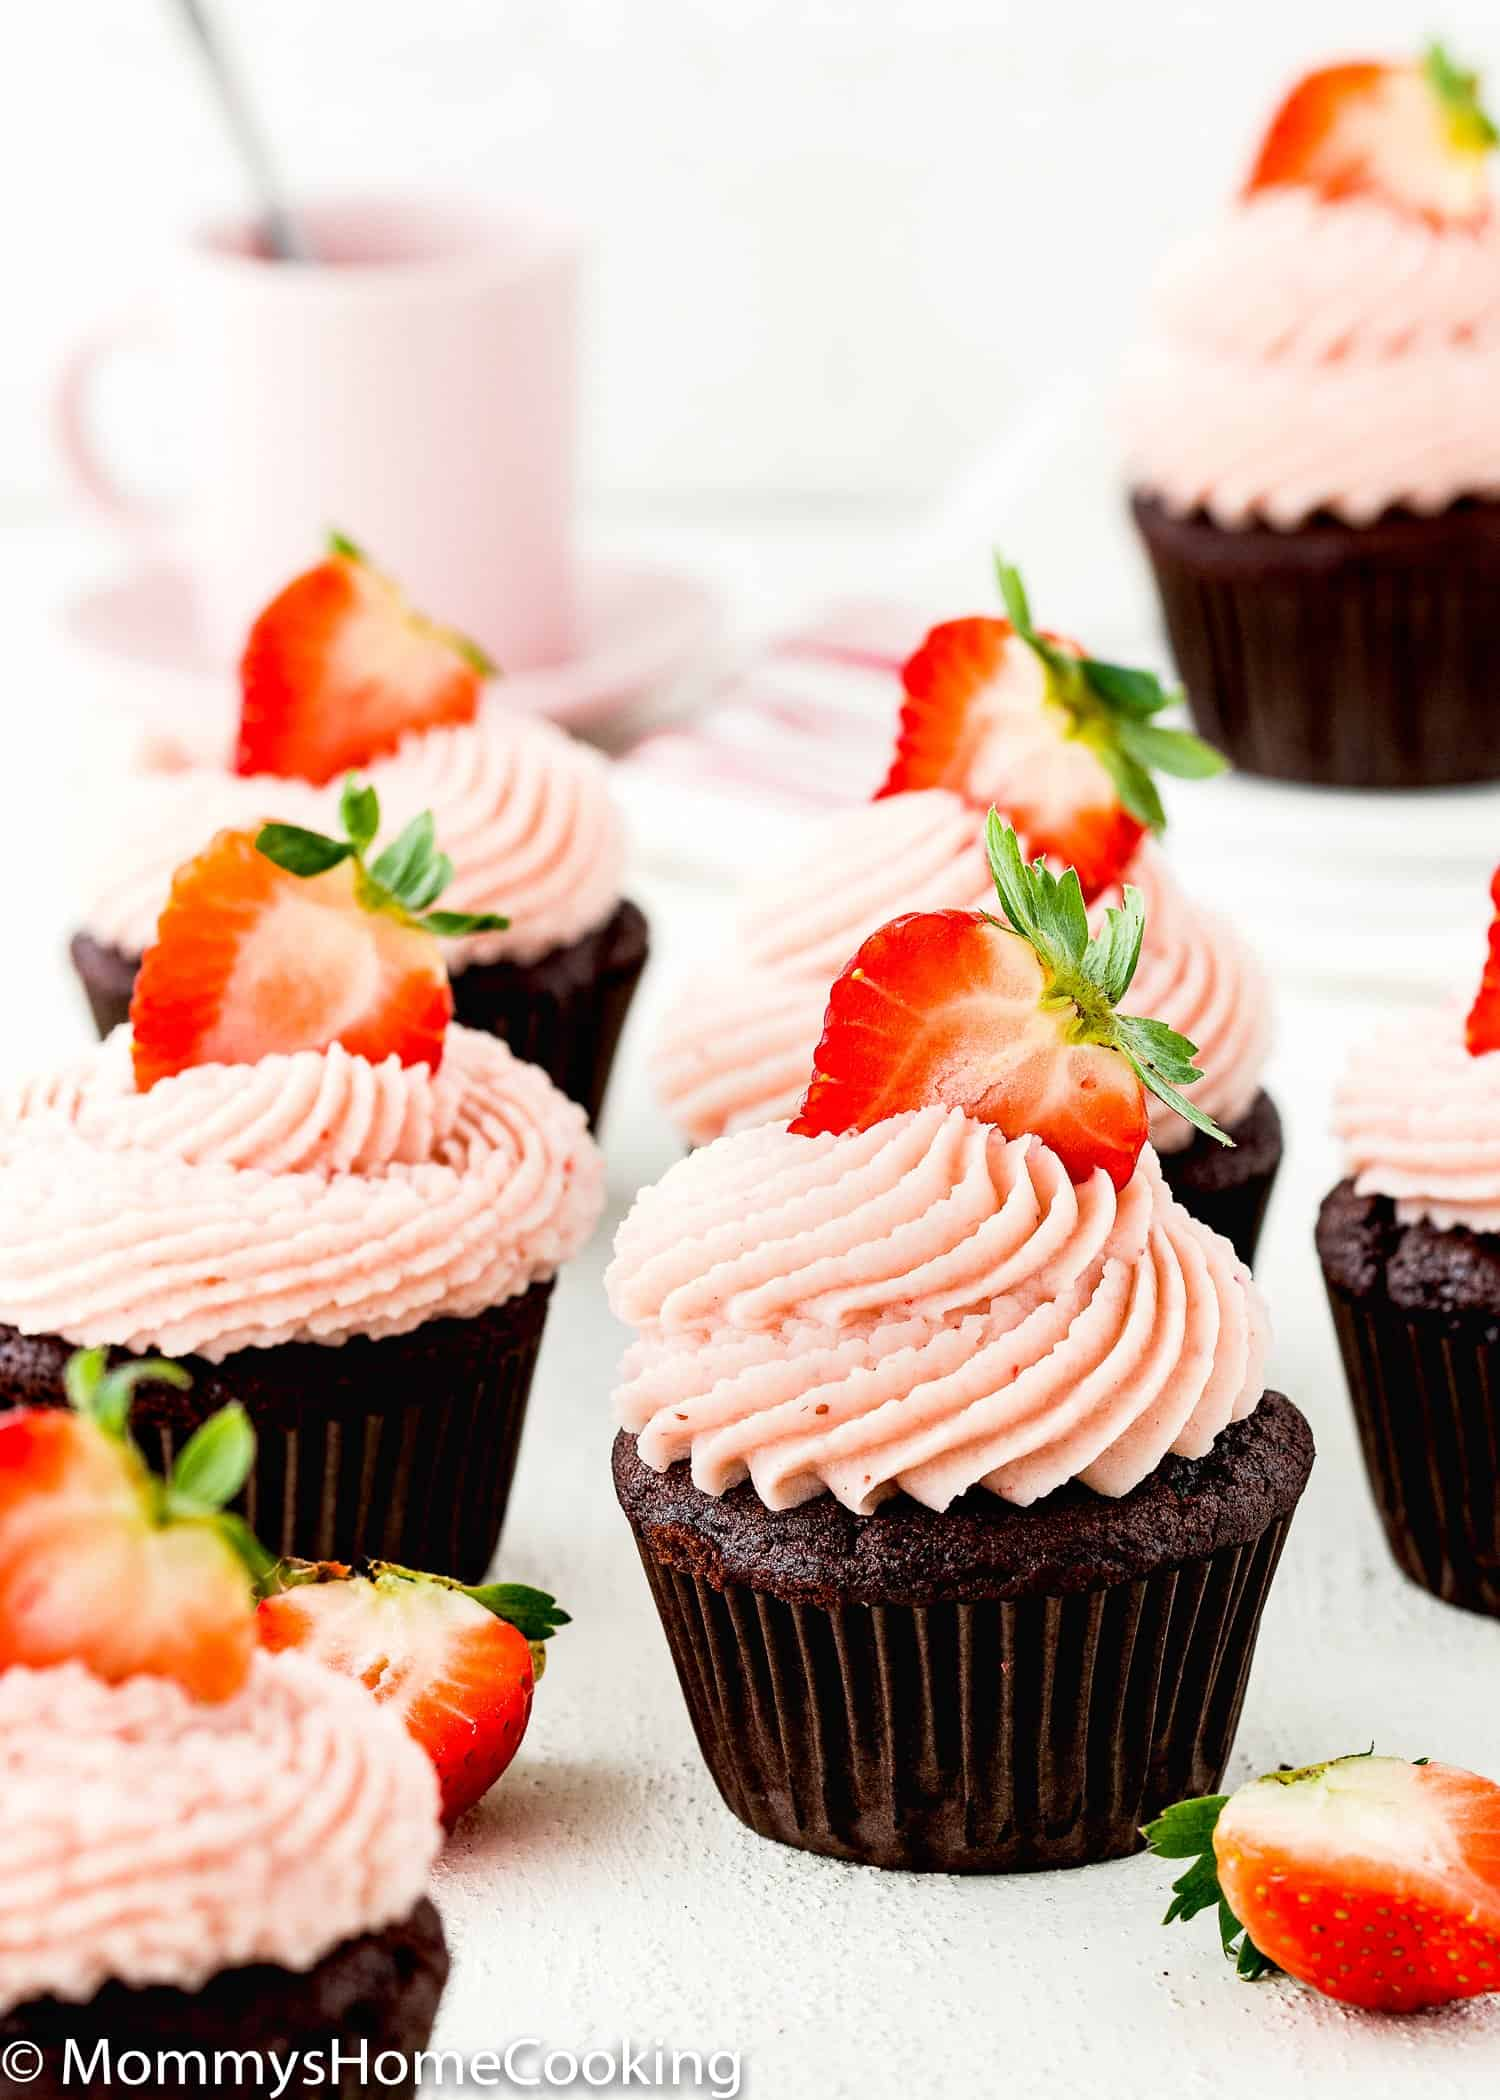 Eggless Chocolate Strawberry Cupcakes with strawberry buttercream and fresh strawberries